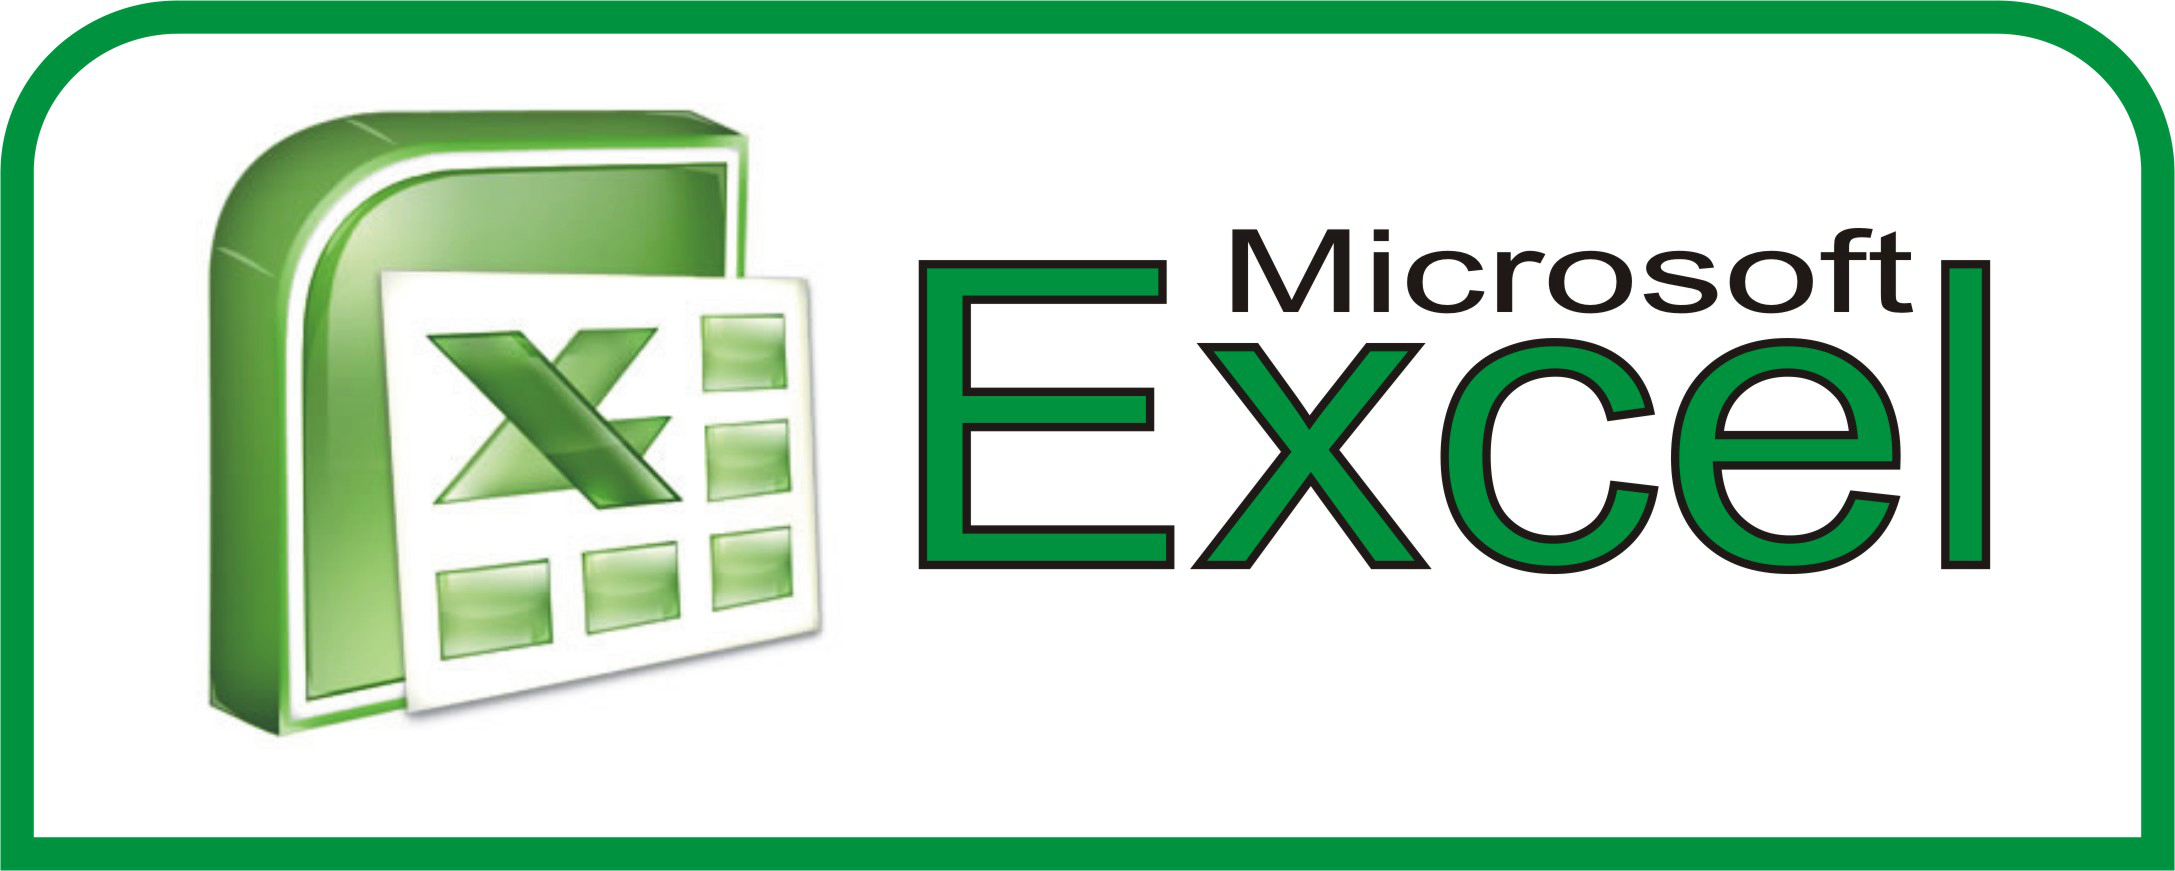 Ediblewildsus  Wonderful  Excel Shortcuts You Probably Didnt Know About  Techdissected With Goodlooking How Do You Create A Graph In Excel Besides How To Create A Schedule On Excel Furthermore Microsoft Office Word Excel Powerpoint Free Download For Windows  With Astounding Online Convert Pdf Into Excel Also Property Management Spreadsheet Template Excel In Addition Simple Bookkeeping With Excel And Share An Excel File As Well As Excel Unhide Sheets Additionally Excel Present Value Function From Techdissectedcom With Ediblewildsus  Goodlooking  Excel Shortcuts You Probably Didnt Know About  Techdissected With Astounding How Do You Create A Graph In Excel Besides How To Create A Schedule On Excel Furthermore Microsoft Office Word Excel Powerpoint Free Download For Windows  And Wonderful Online Convert Pdf Into Excel Also Property Management Spreadsheet Template Excel In Addition Simple Bookkeeping With Excel From Techdissectedcom